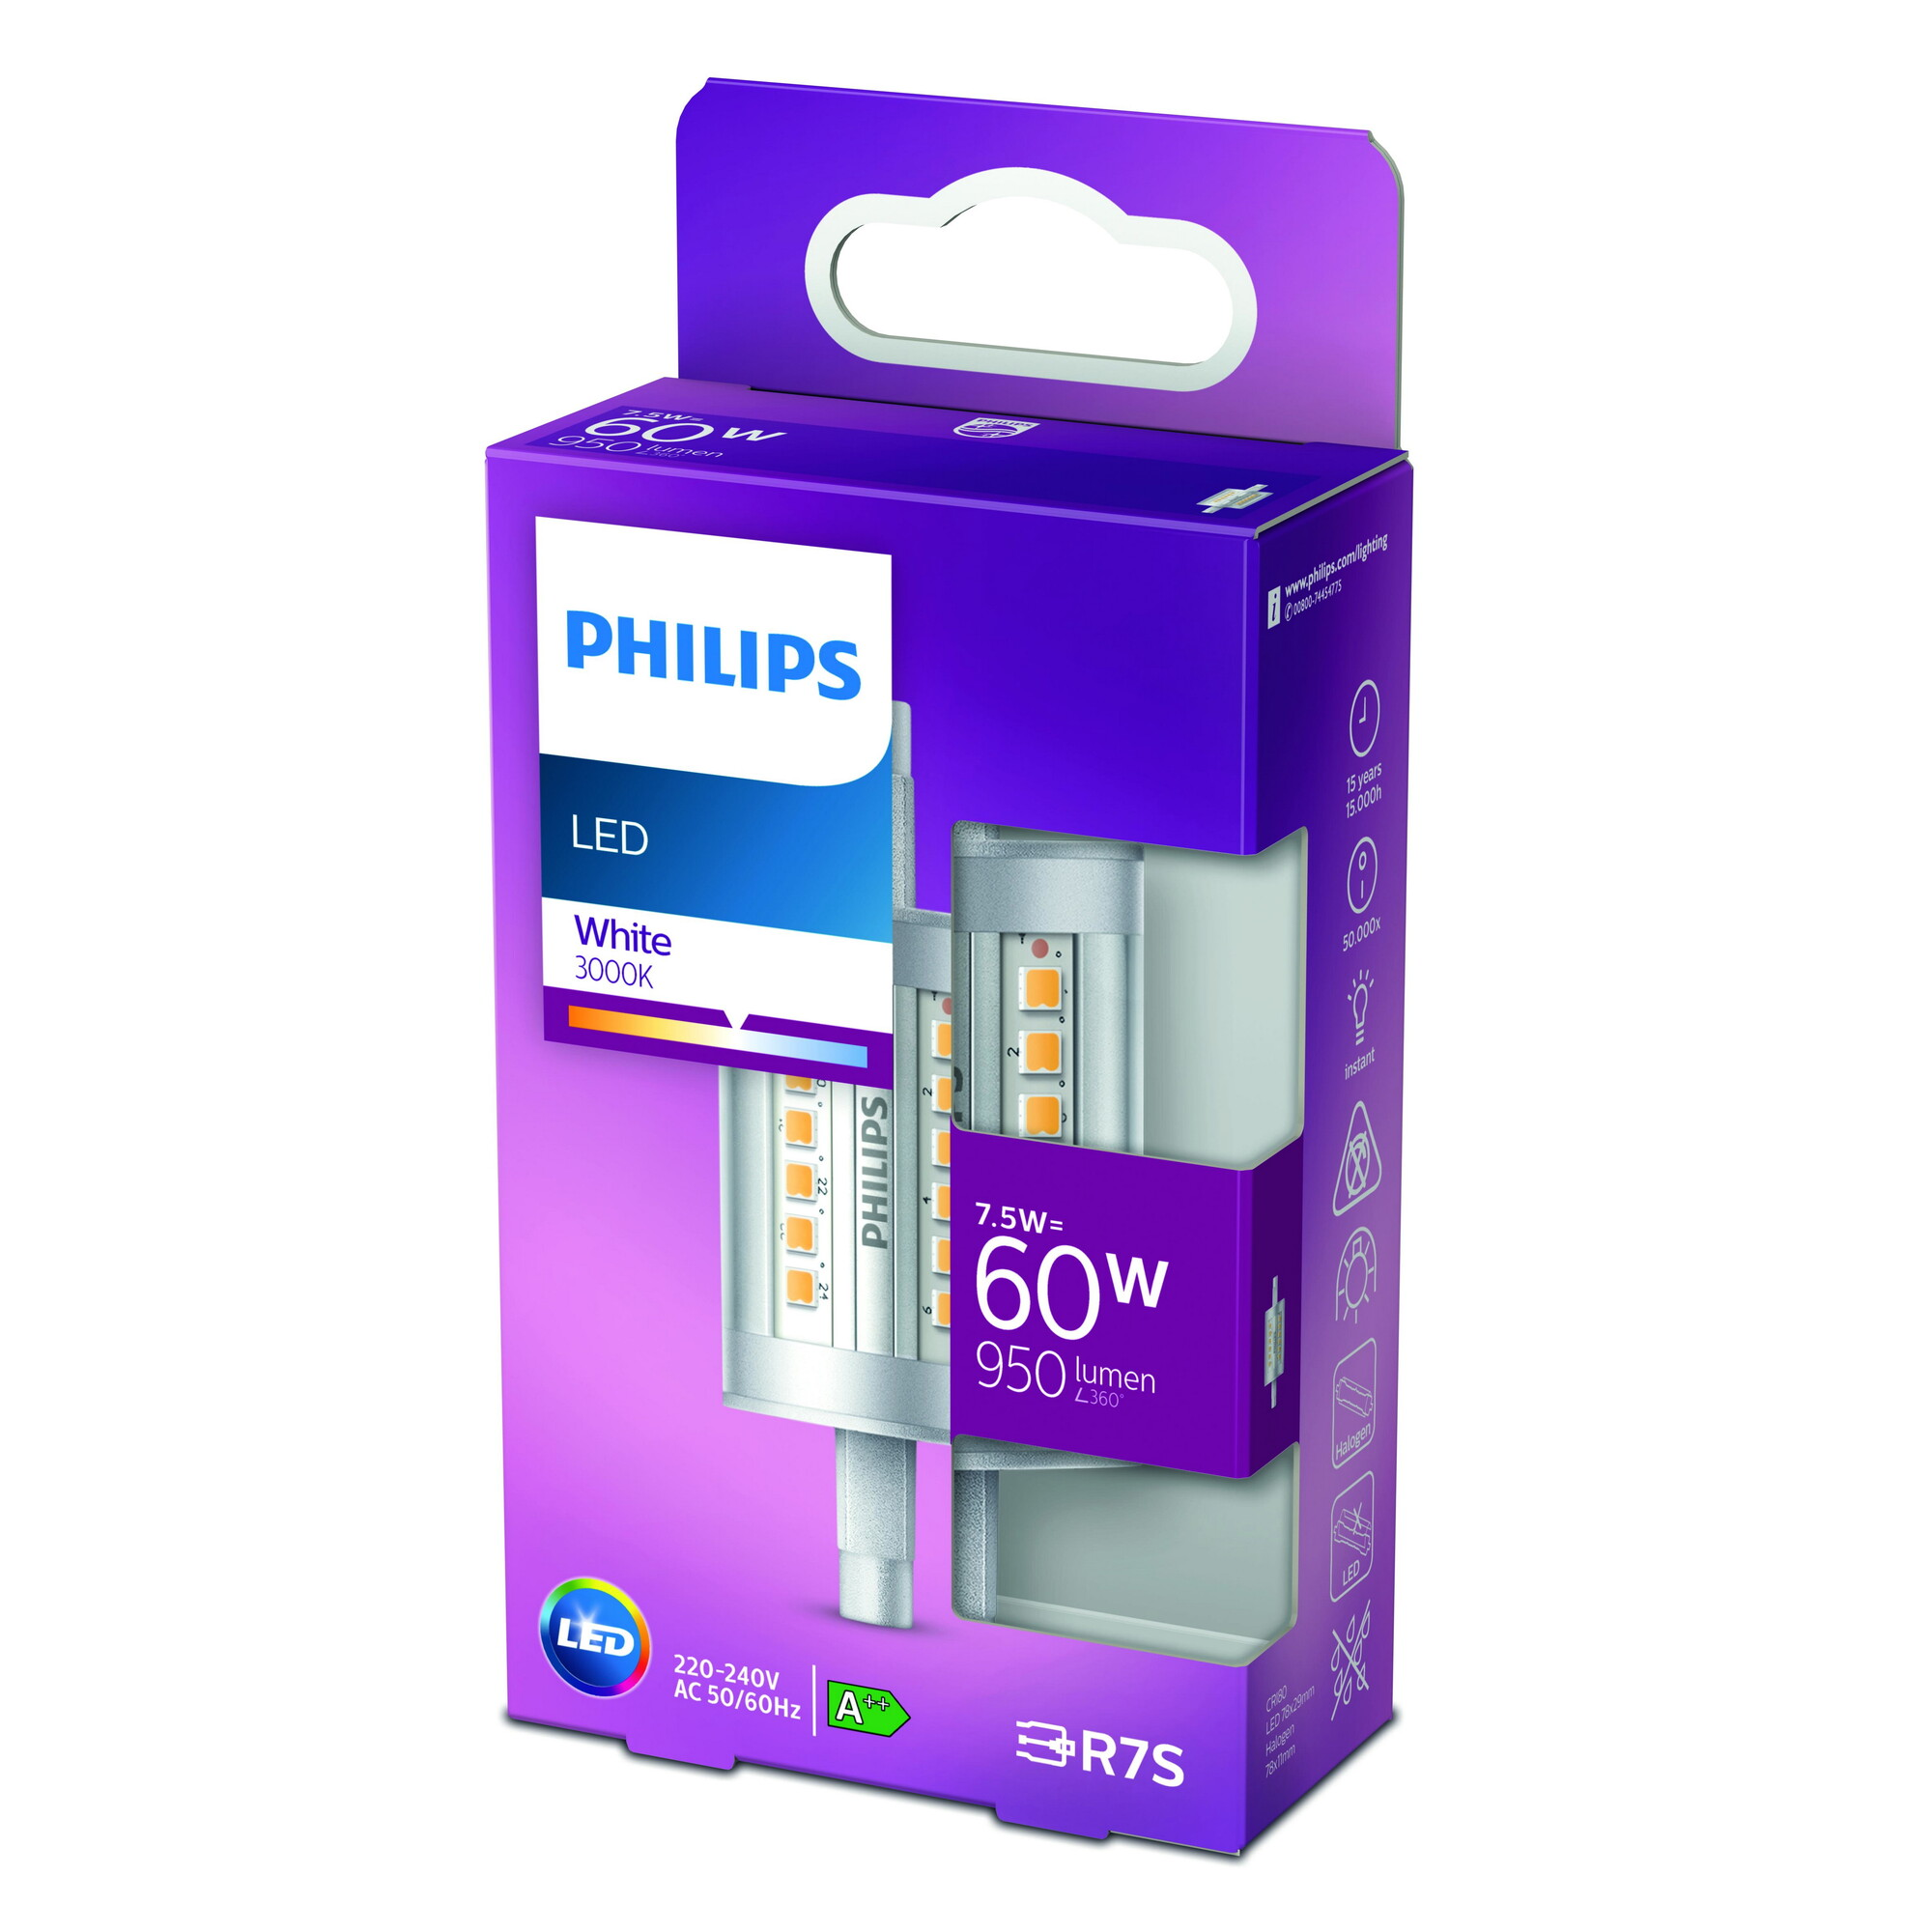 Philips LED R7S 7,5W 950lm 3000K Staaf Transparant